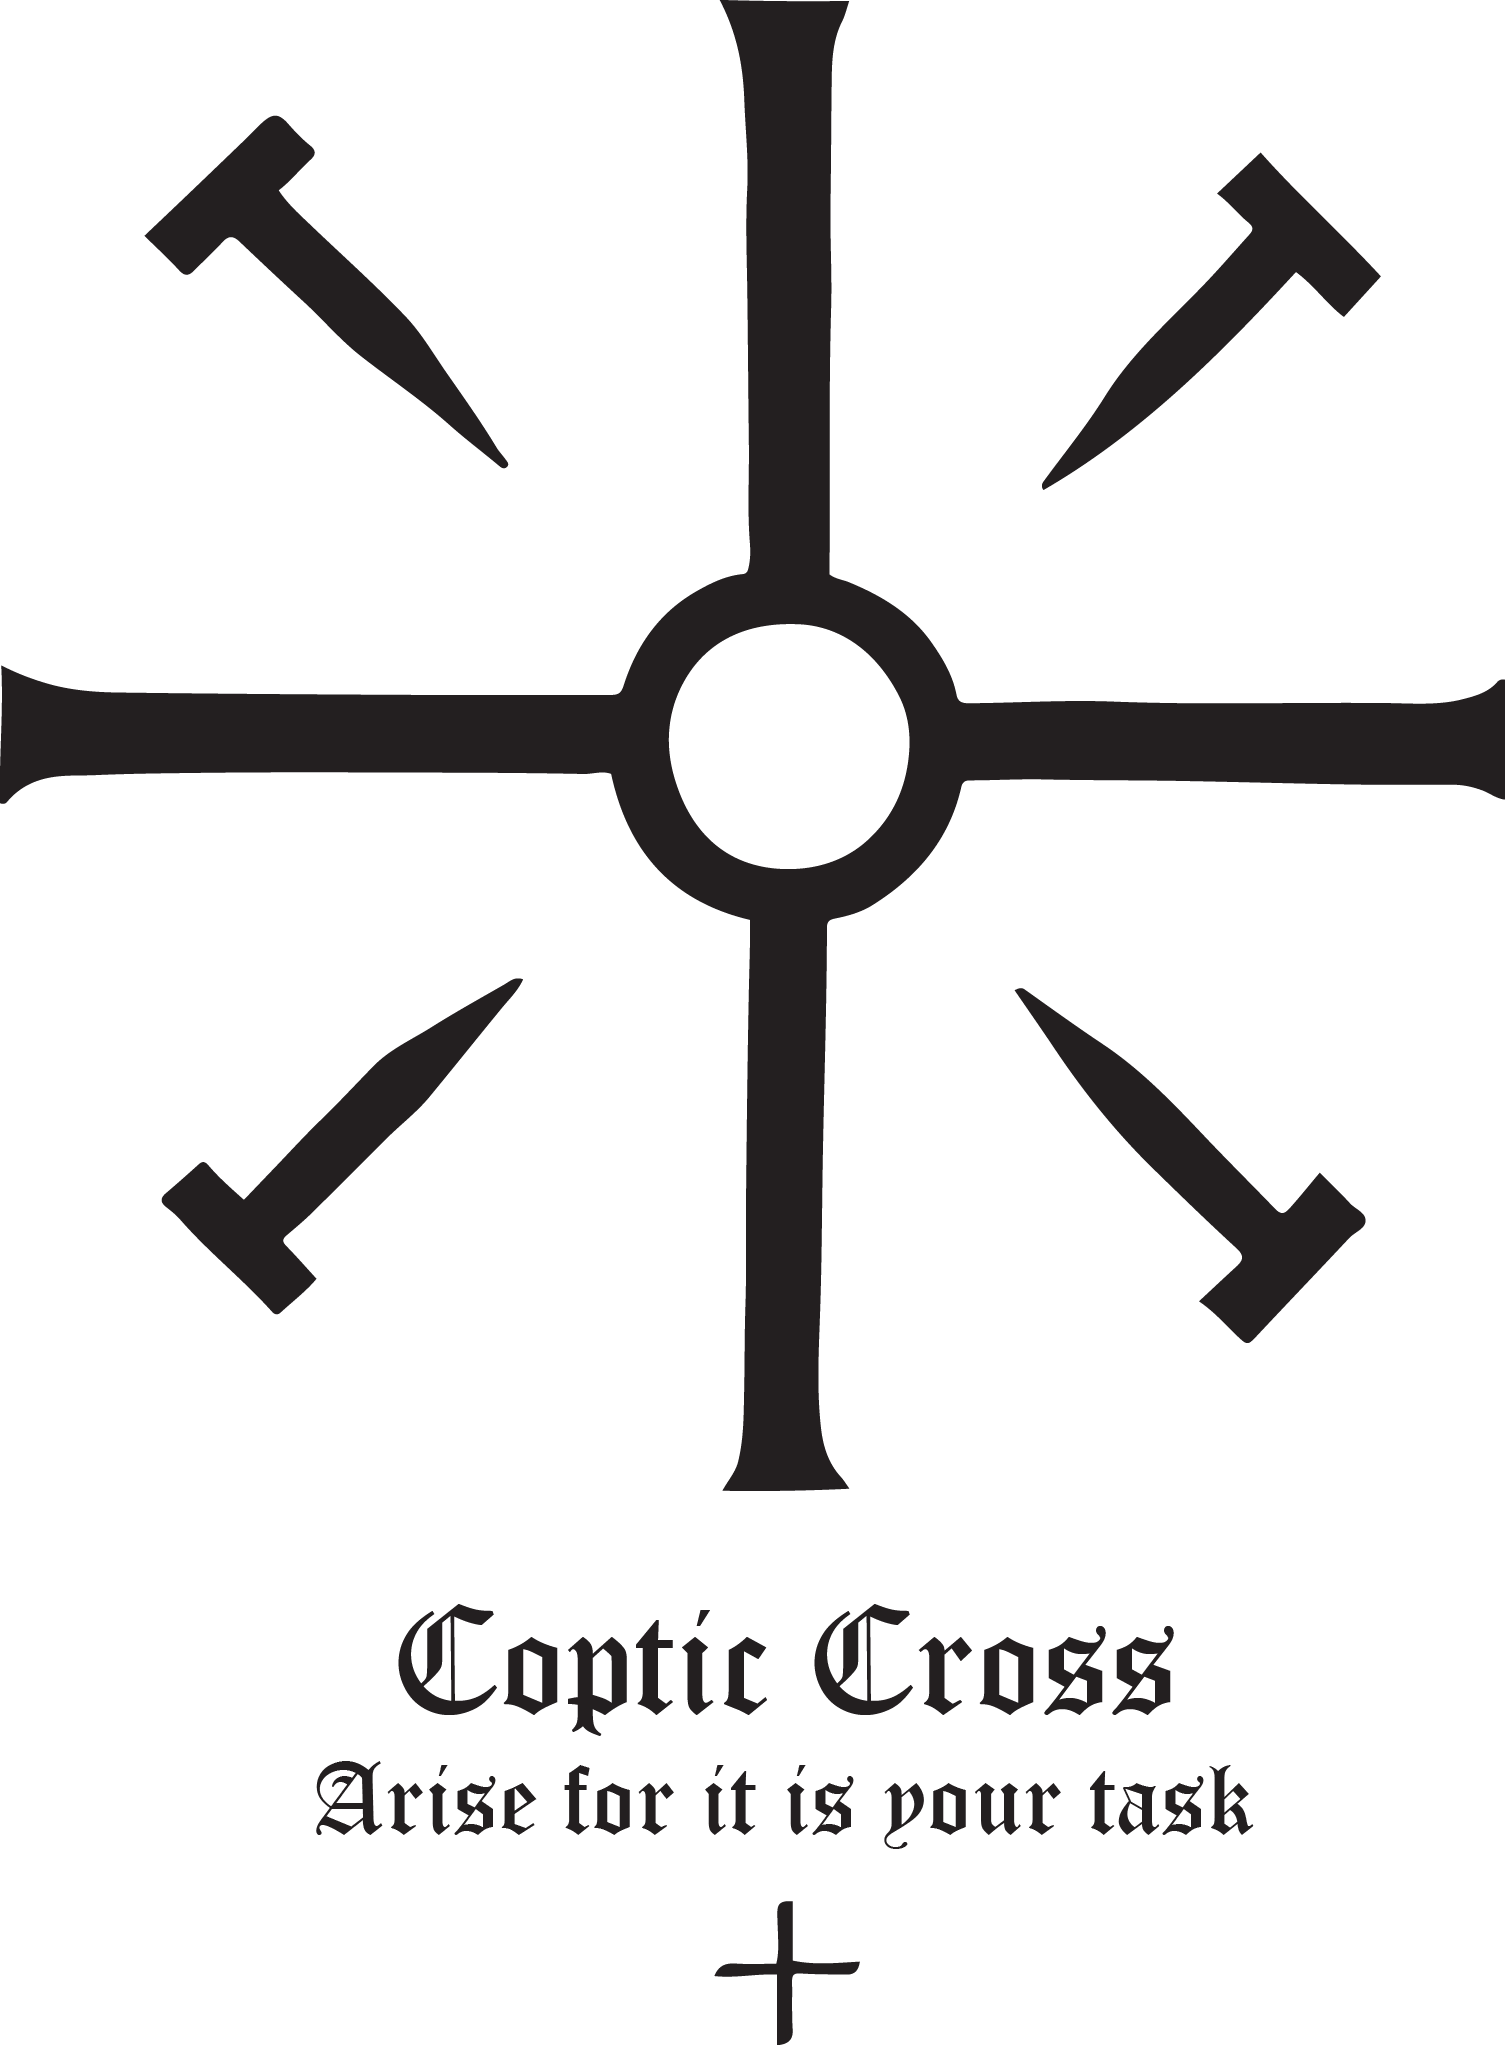 Orthodox bishop crown black and white clipart graphic transparent library Rudolf Koch - Christian Symbol - #118-Coptic-Cross | Pinterest | Symbols graphic transparent library